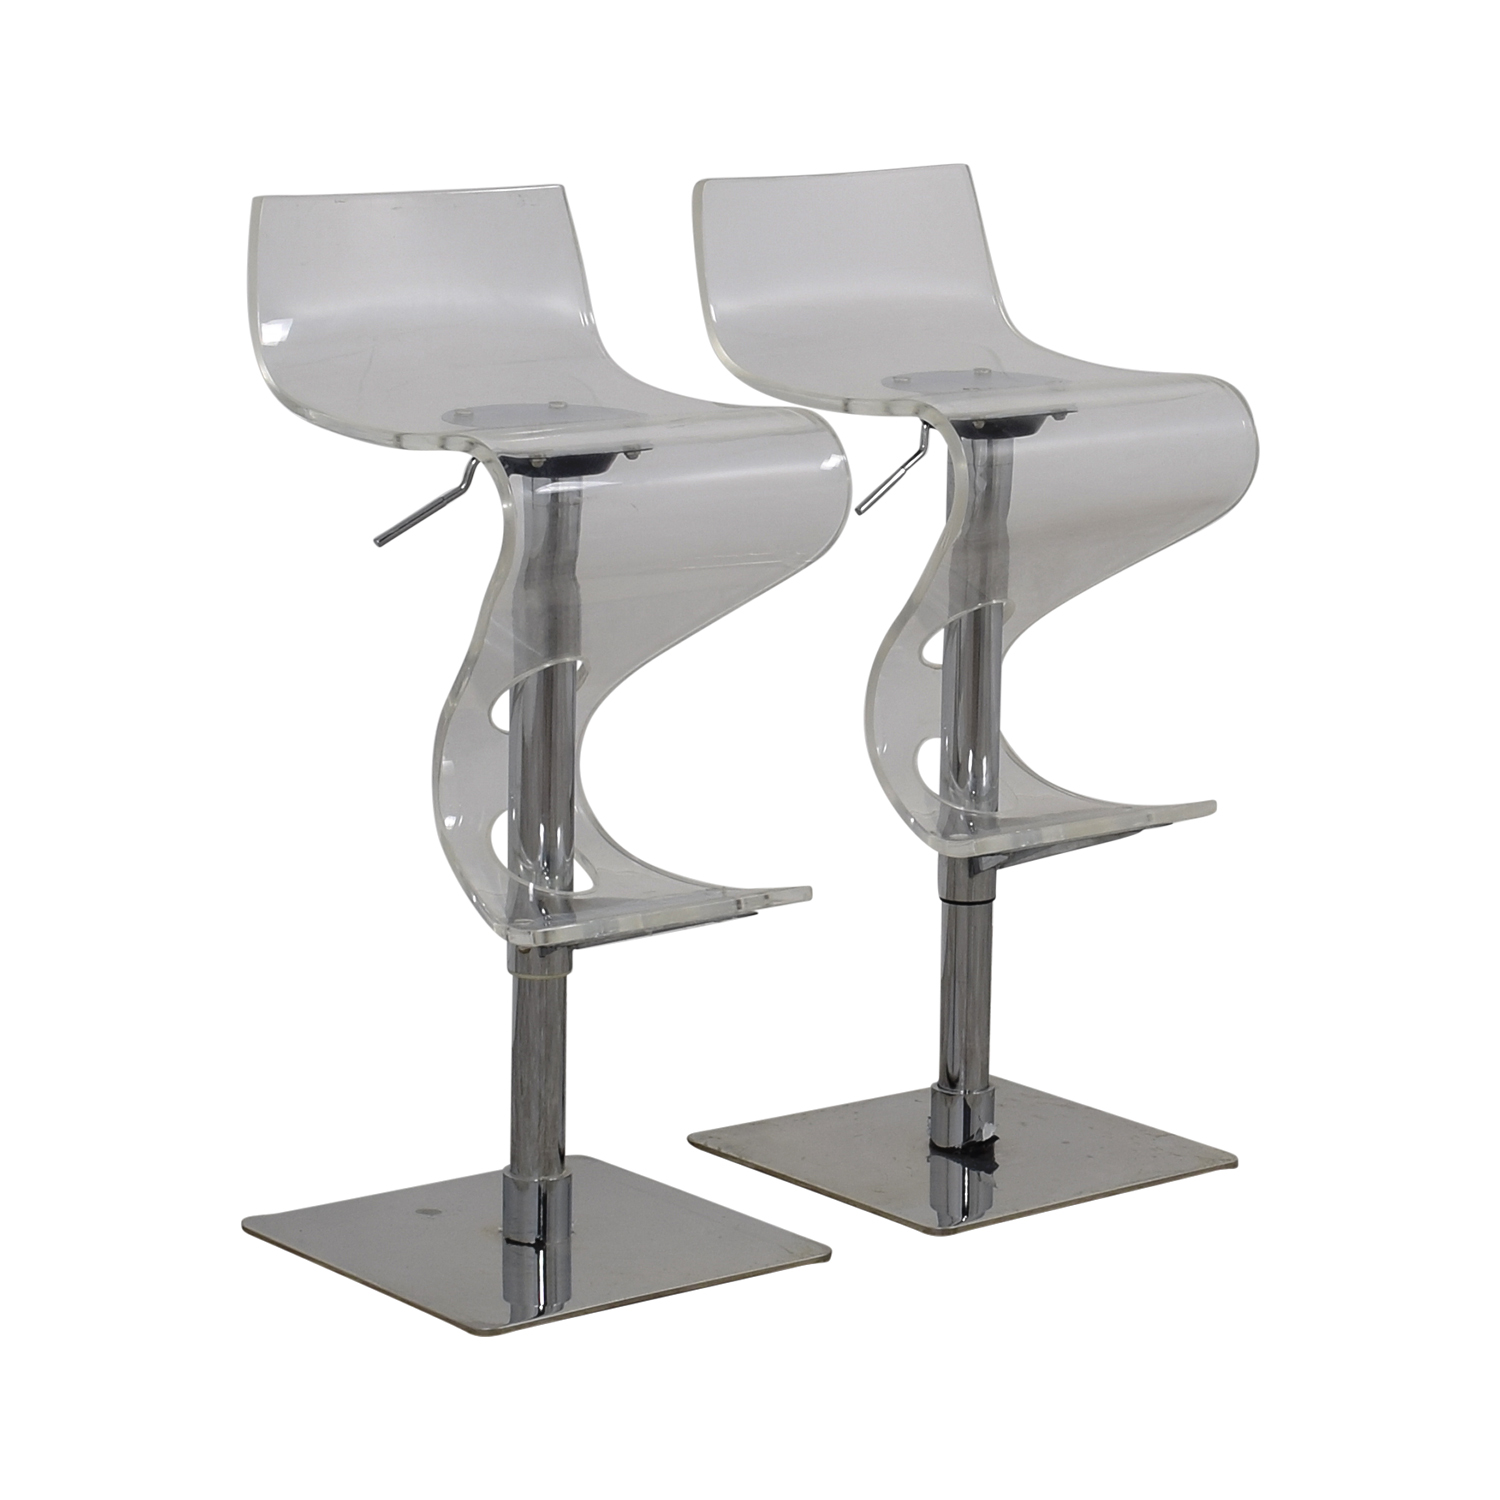 86 Off Ghost And Chrome Adjustable Bar Stools Chairs